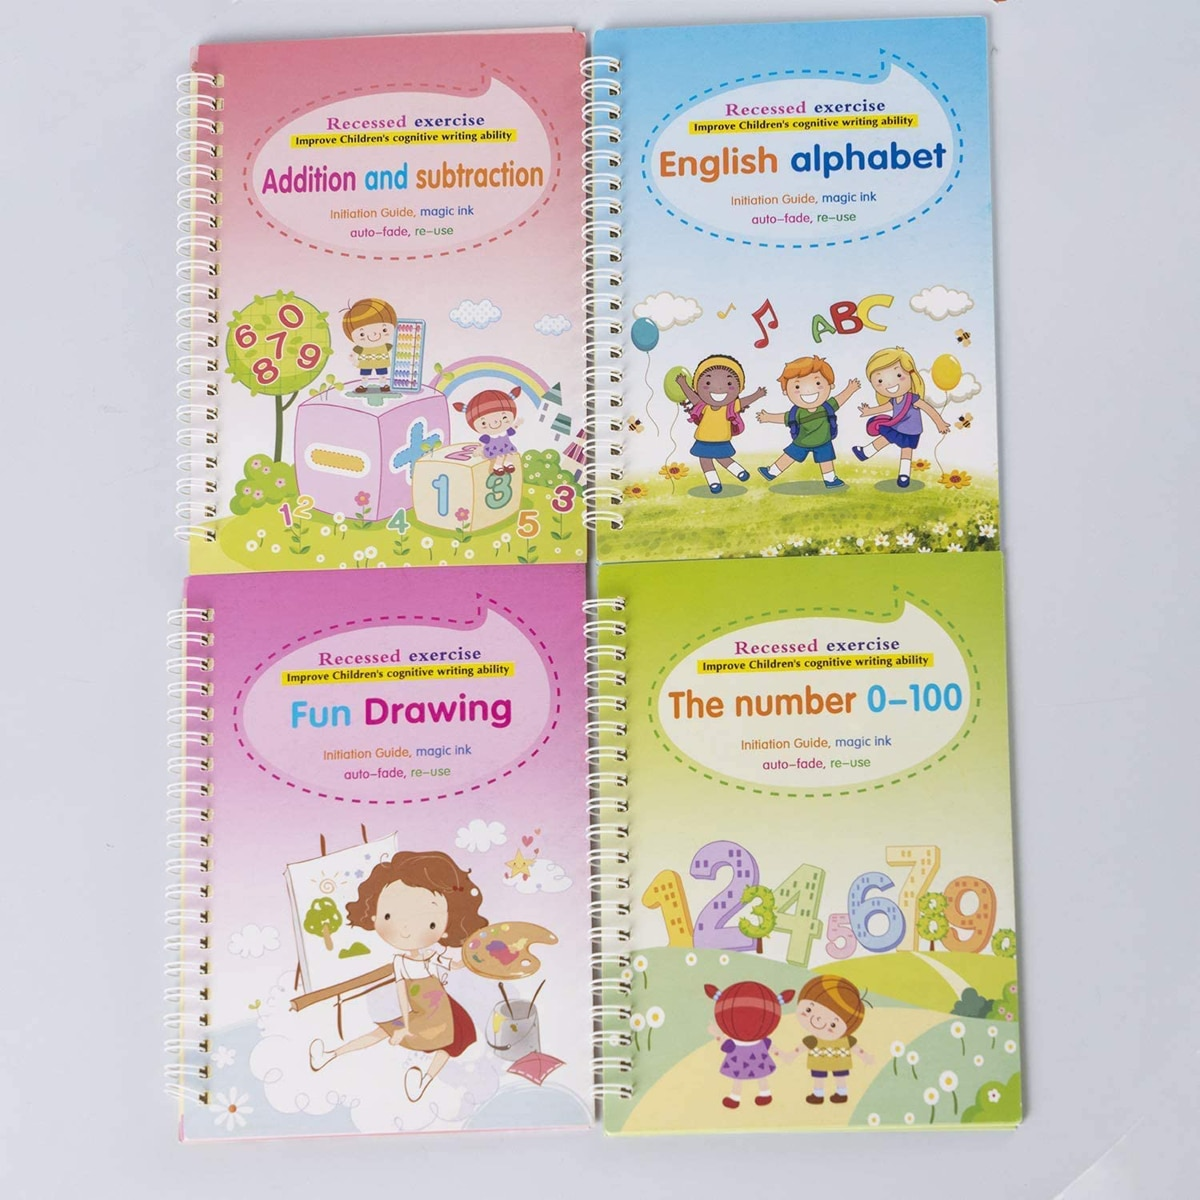 Magic Practice Copybook English Study Workbooks 4 Pack Reusable Children's Calligraphy Letter Tracing Paper Mathematical Drawing enlarge